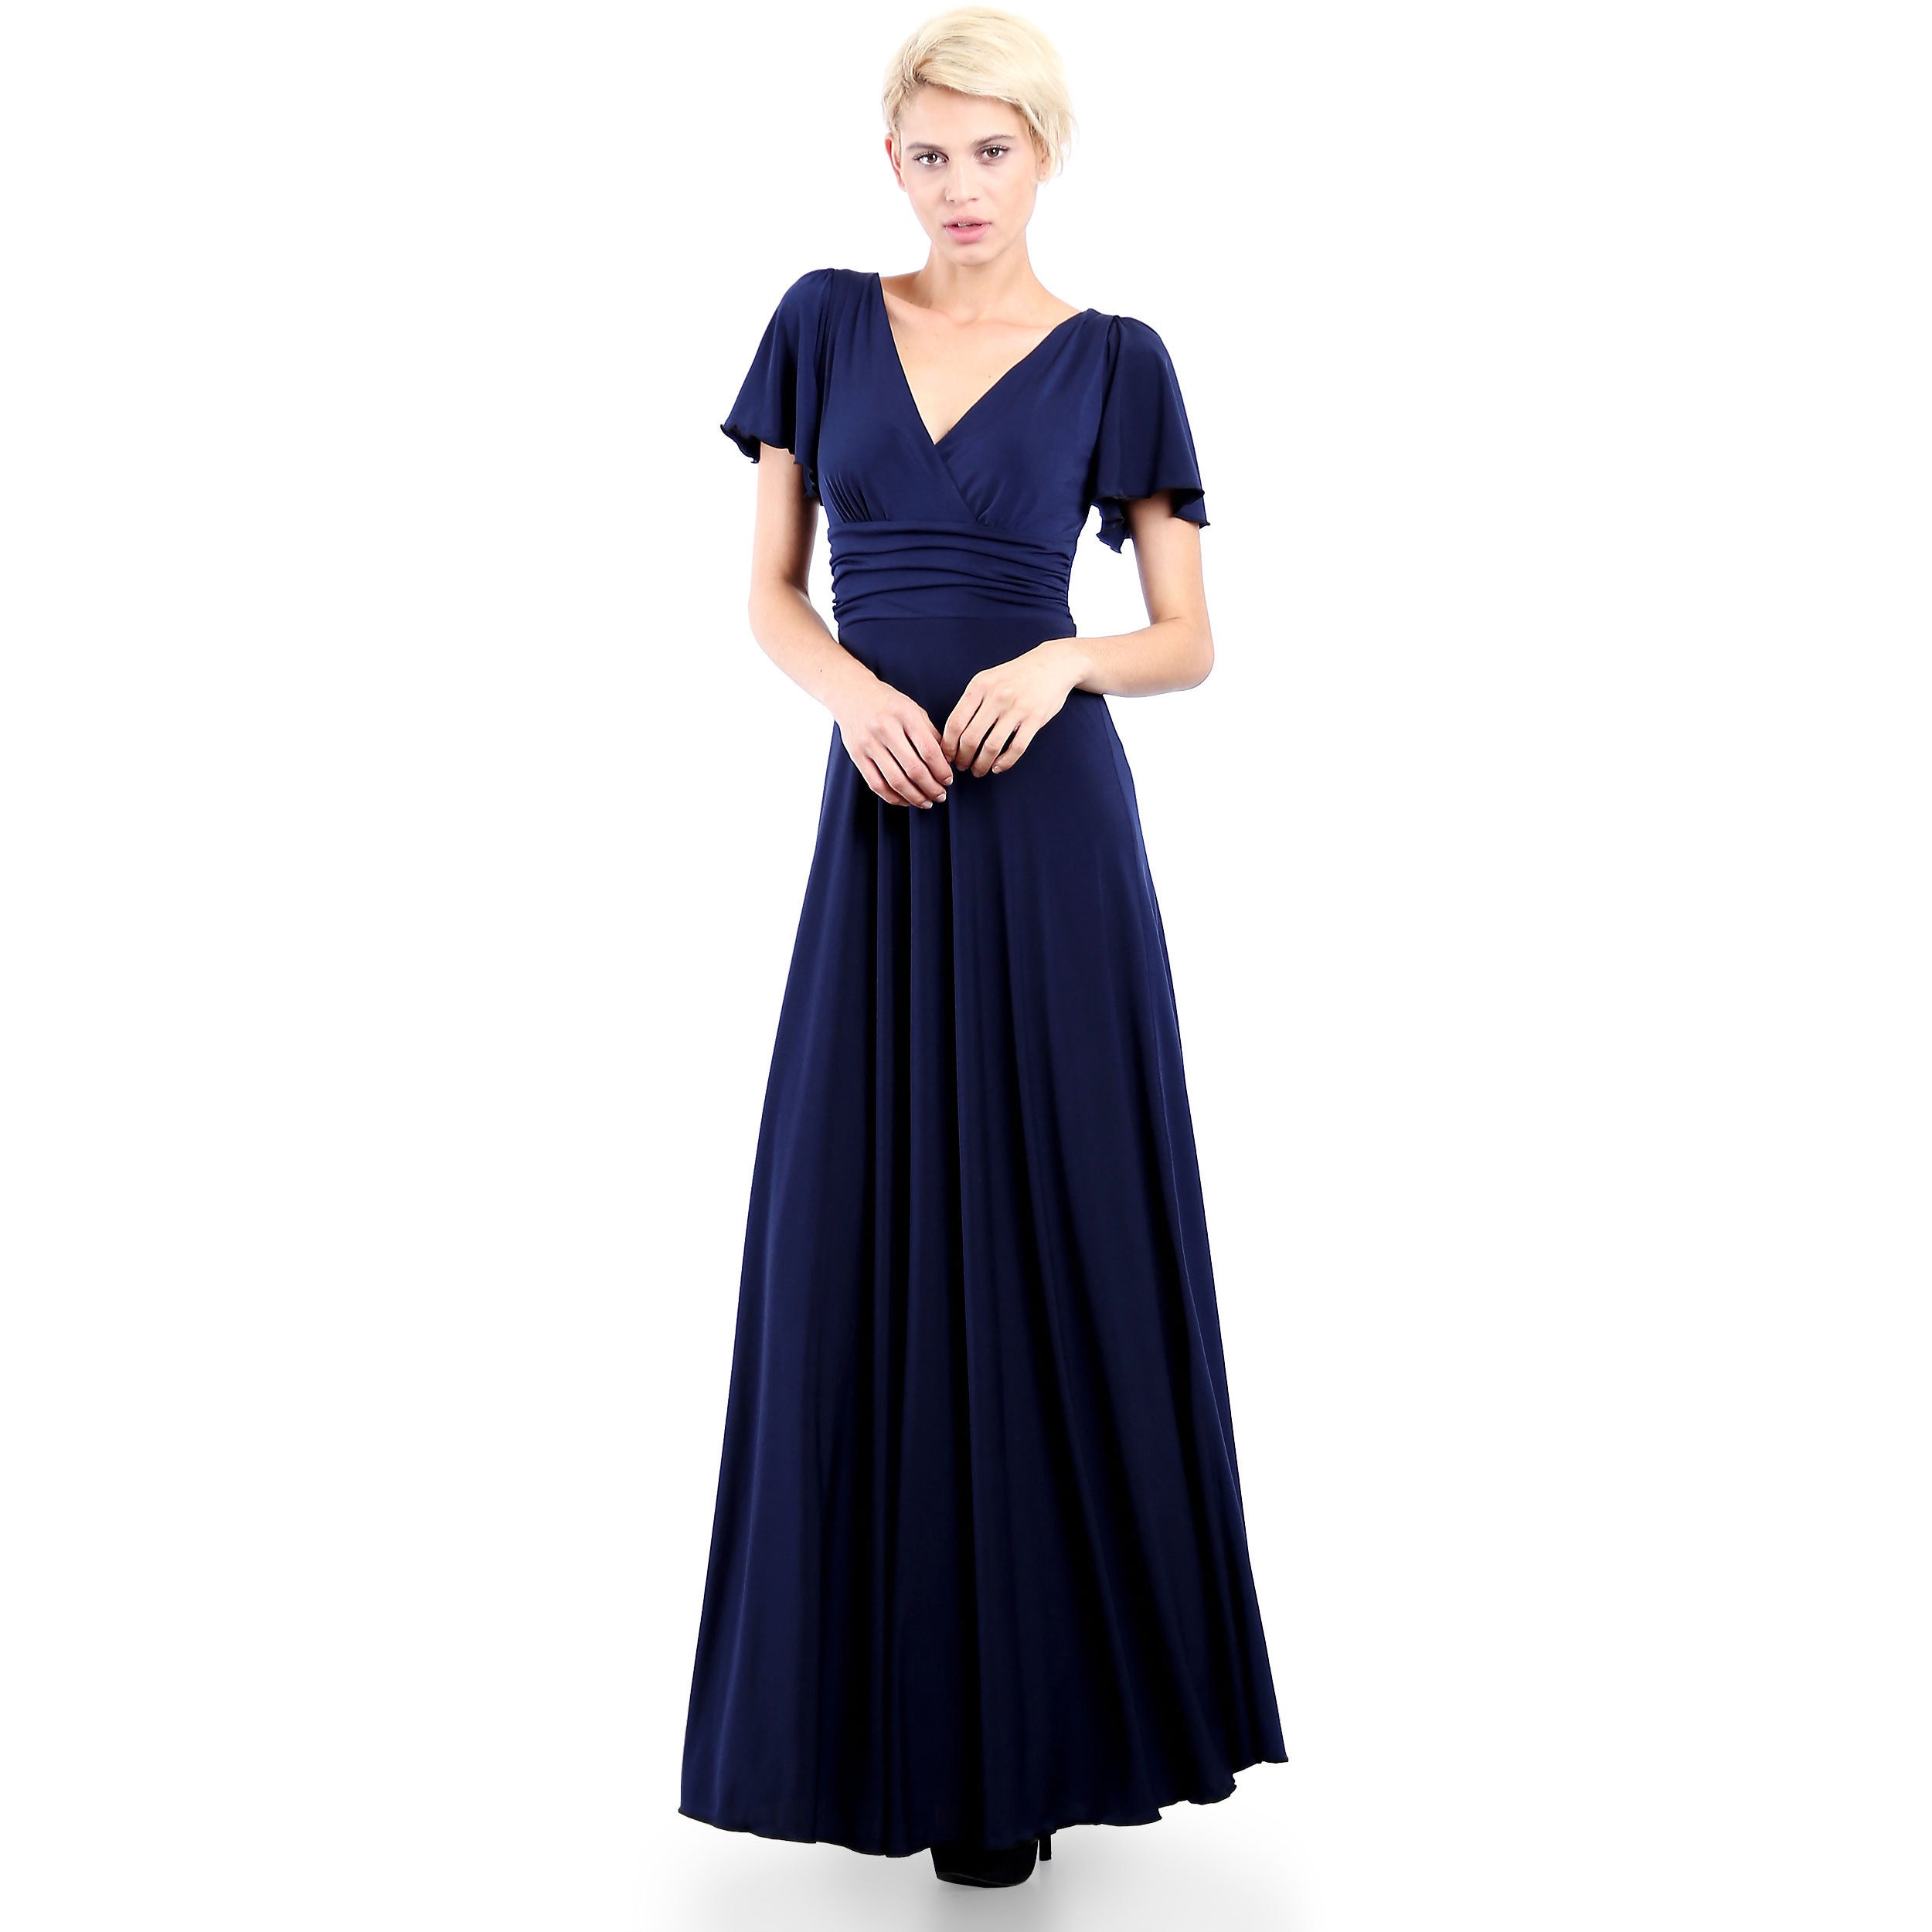 Evanese Womens Elegant Slip On Long Formal Evening Party Dress With